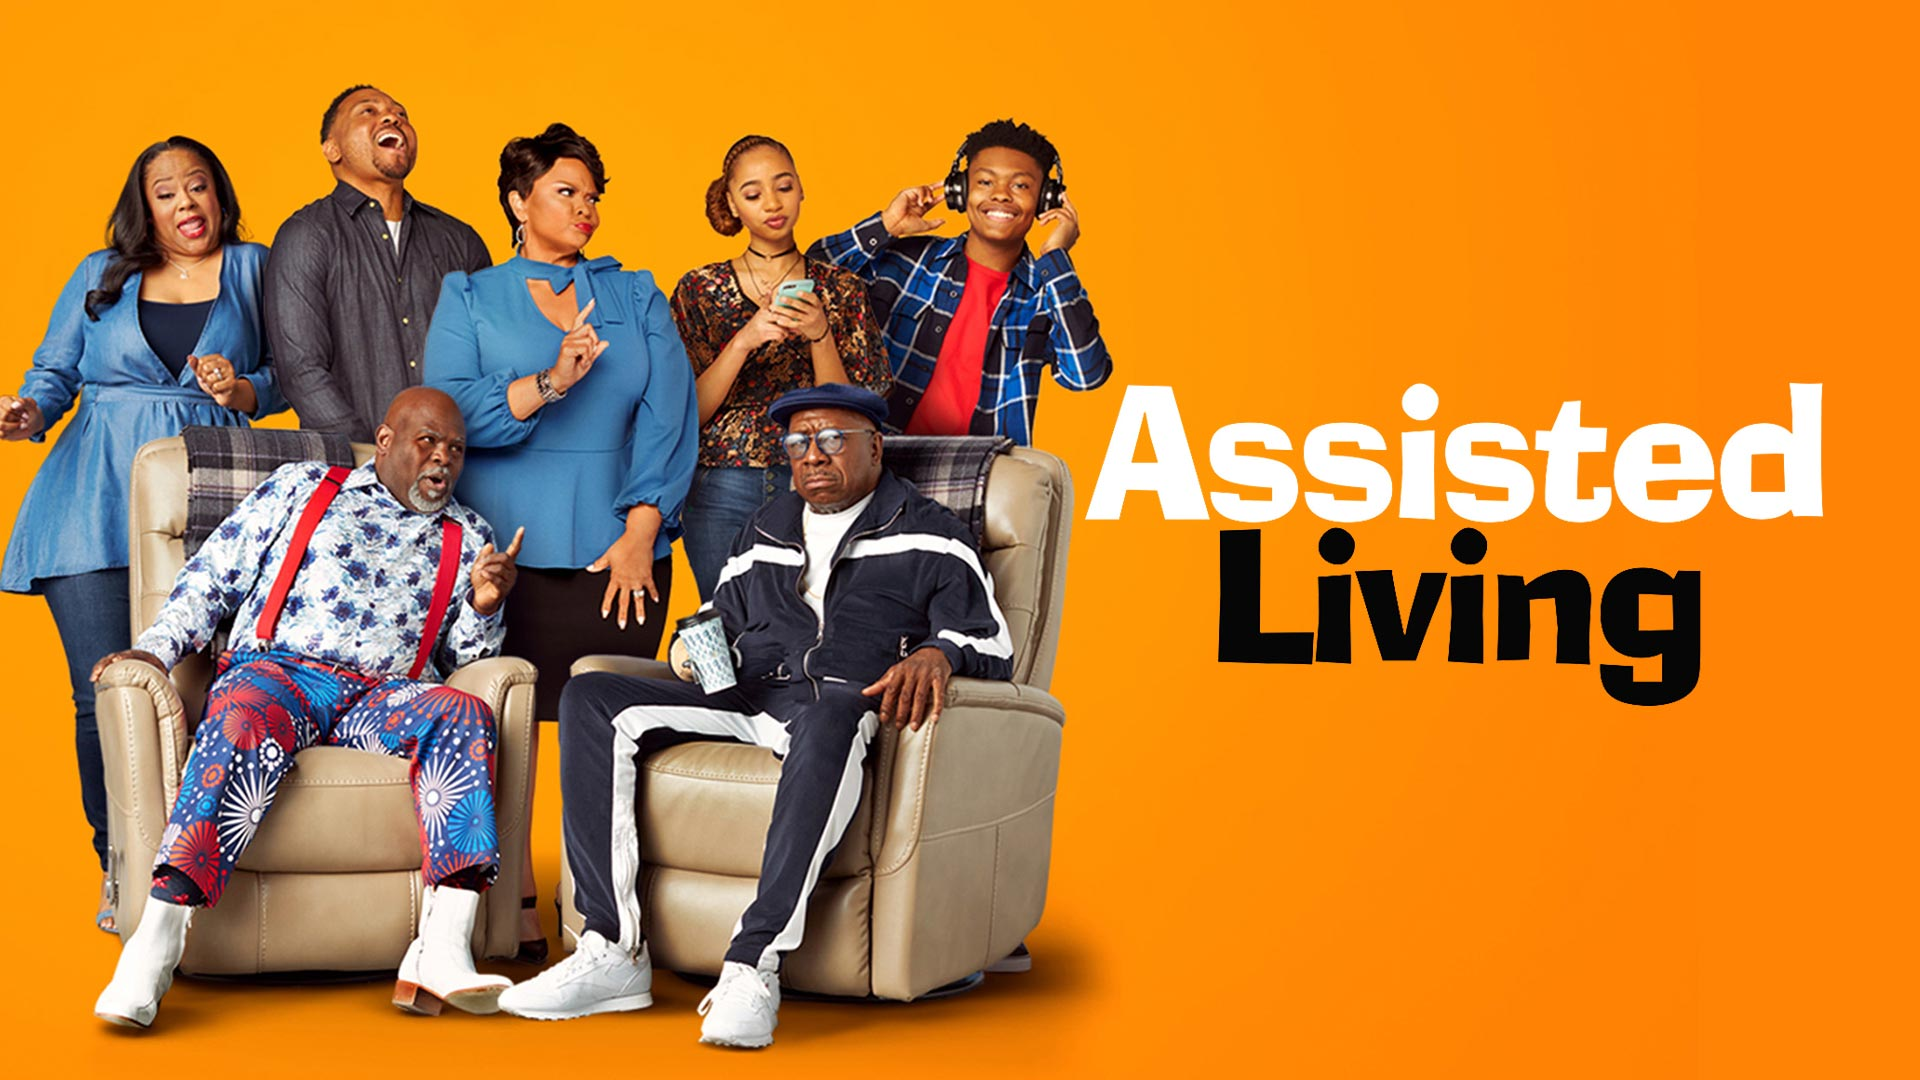 Assisted Living Season 1